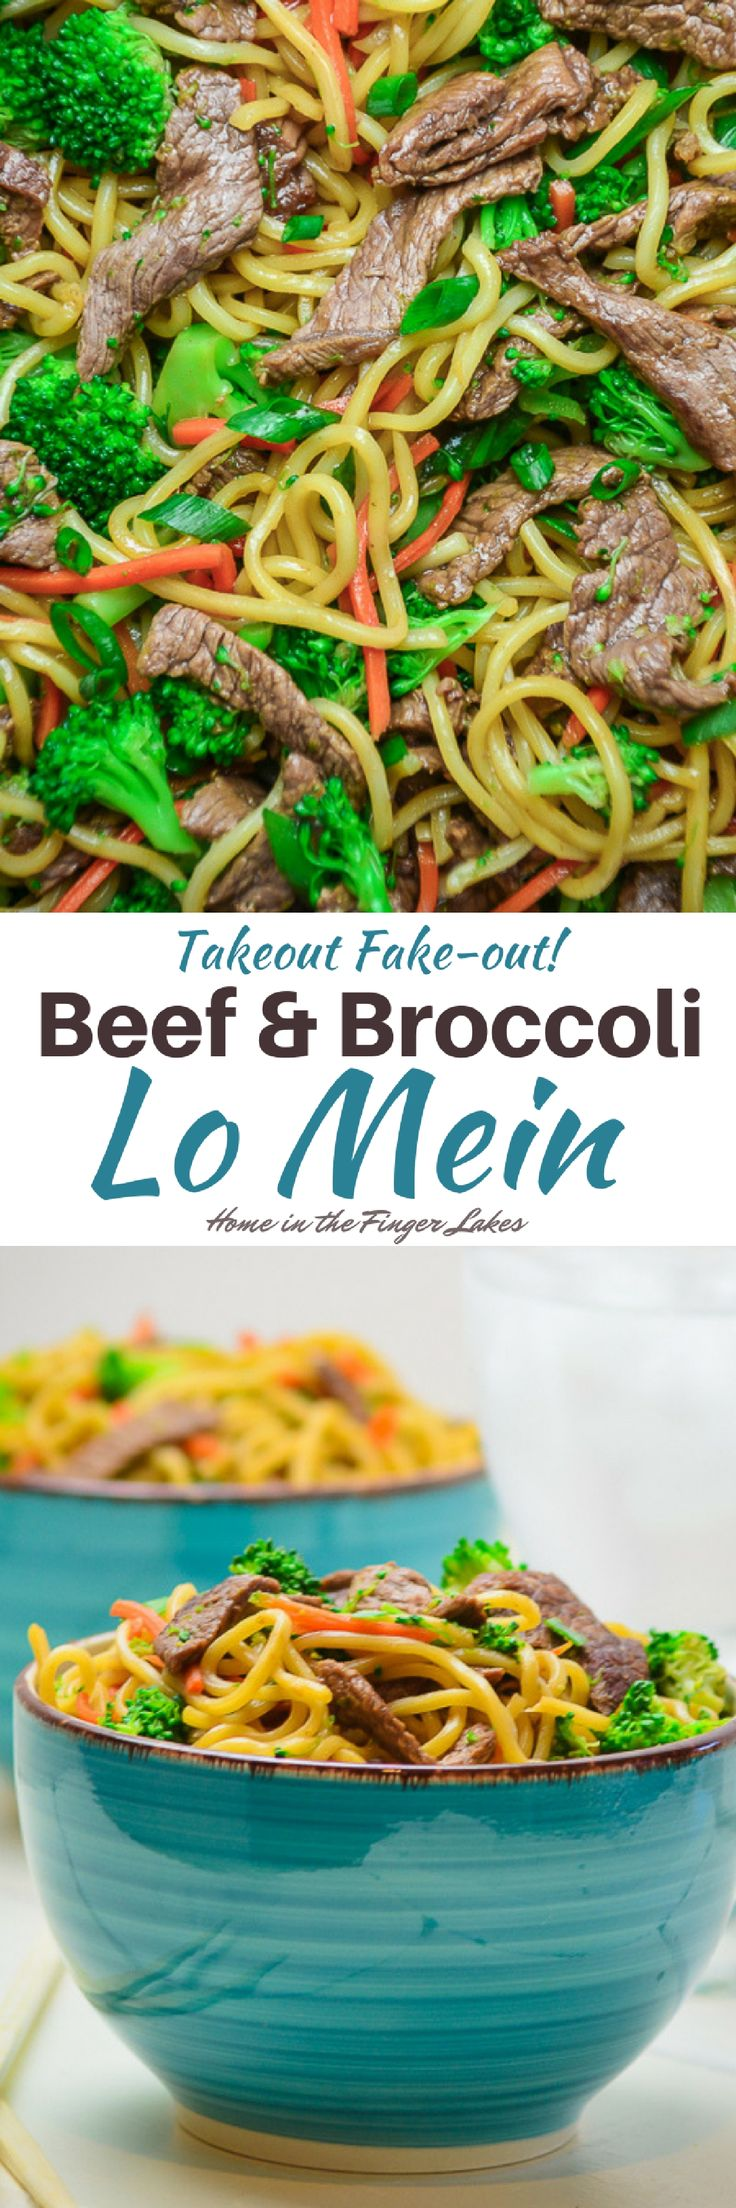 Dinner's on the table in 20 Minutes with this Beef and Broccoli Lo Mein. Tender Moyer Beef sirloin steak strips tossed with veggies and lo mein noodles in a flavorful sauce is the perfect weeknight meal.  #Sponsored